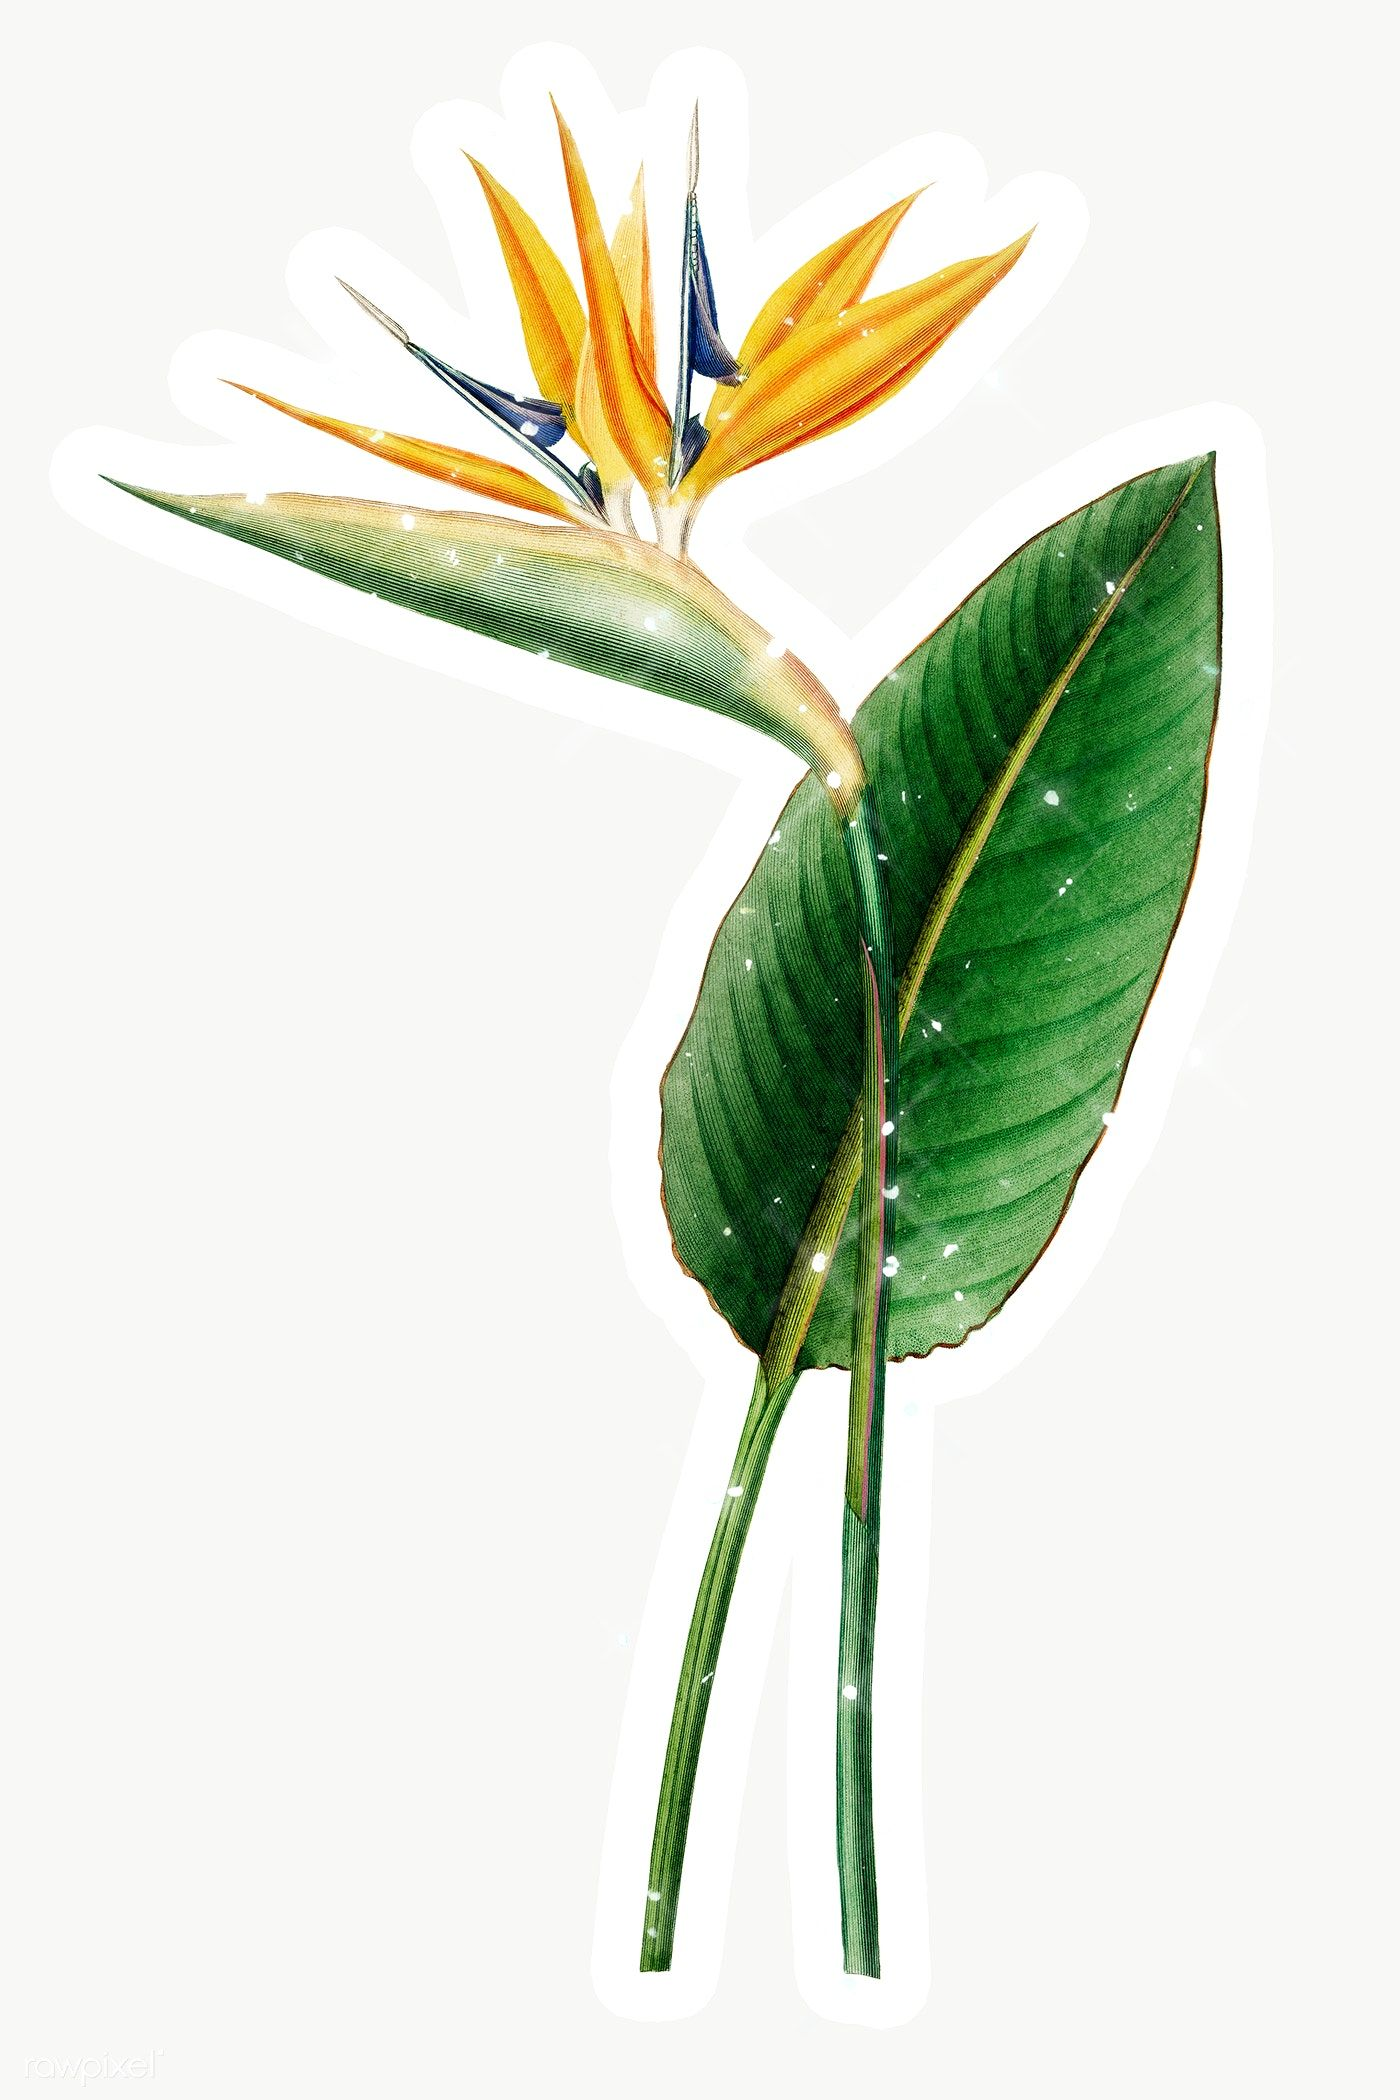 Hand Drawn Sparkling Bird Of Paradise Flower Sticker With White Border Free Image By Rawpixel Com Manotang